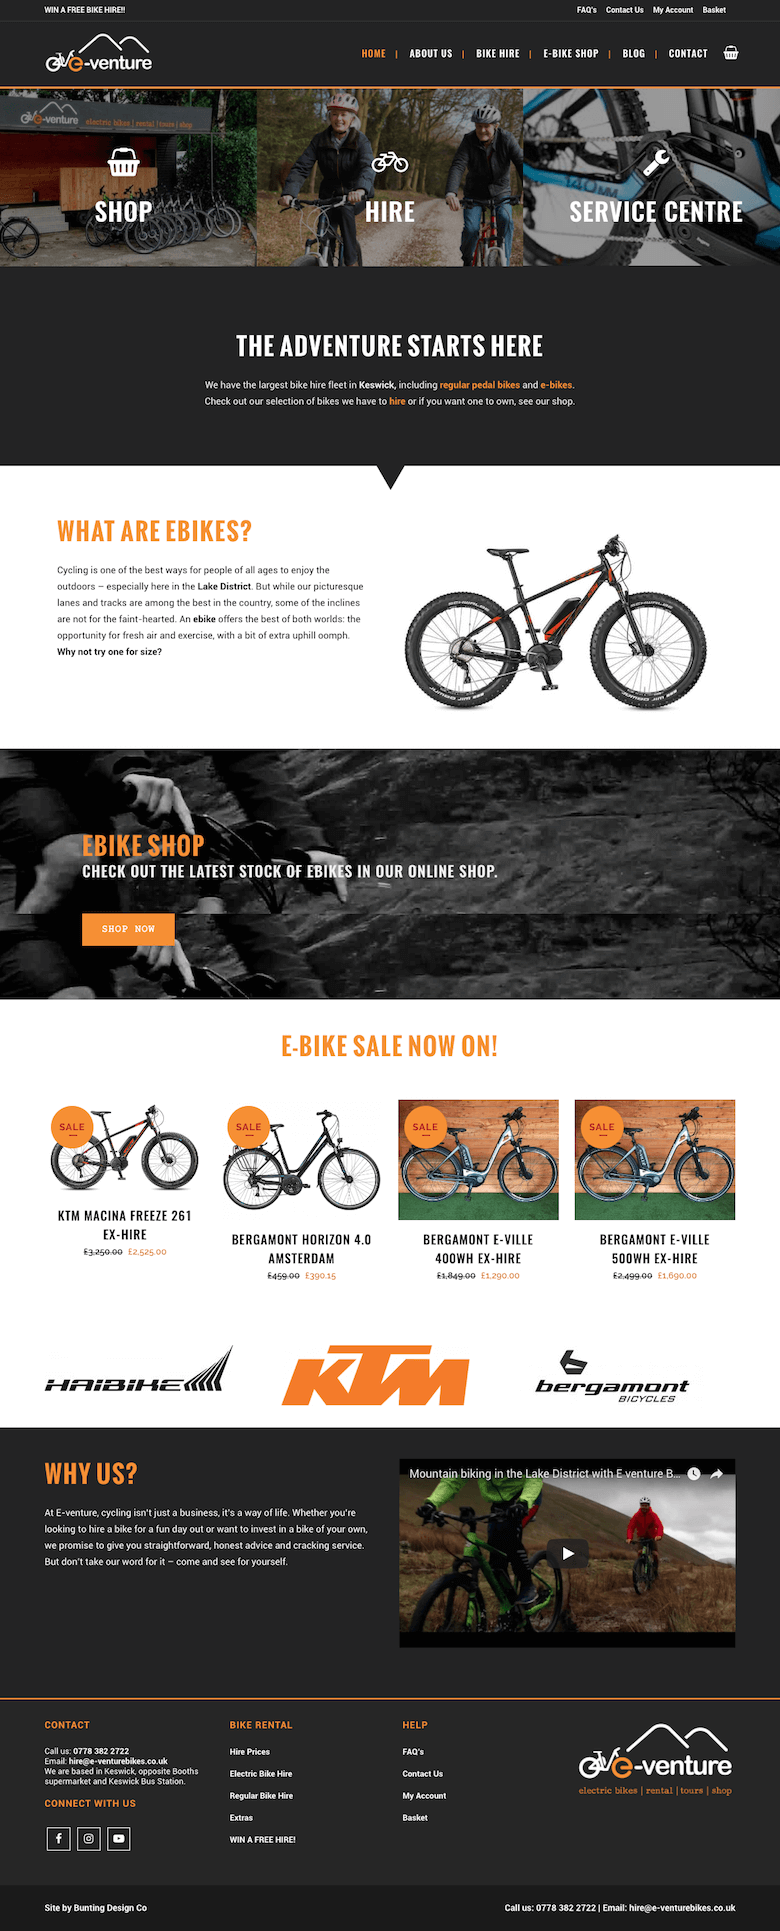 E-Venture ebike website design